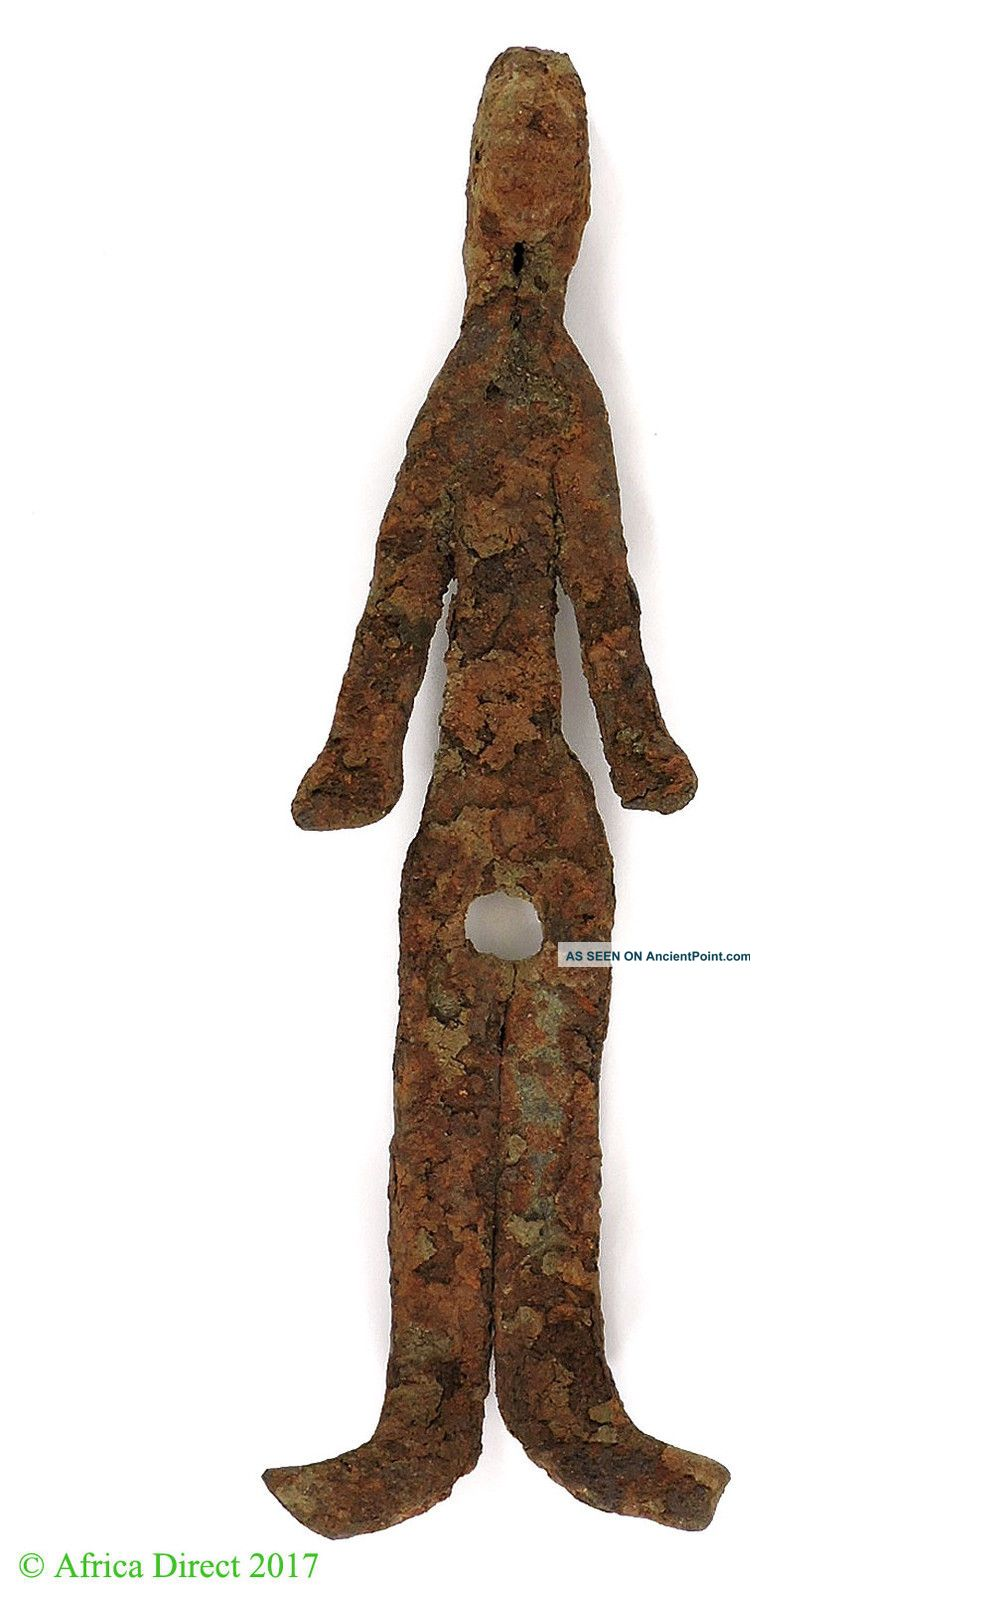 Bamana Figurine Rusted Iron Miniature Mali African Art Was $95 Other African Antiques photo